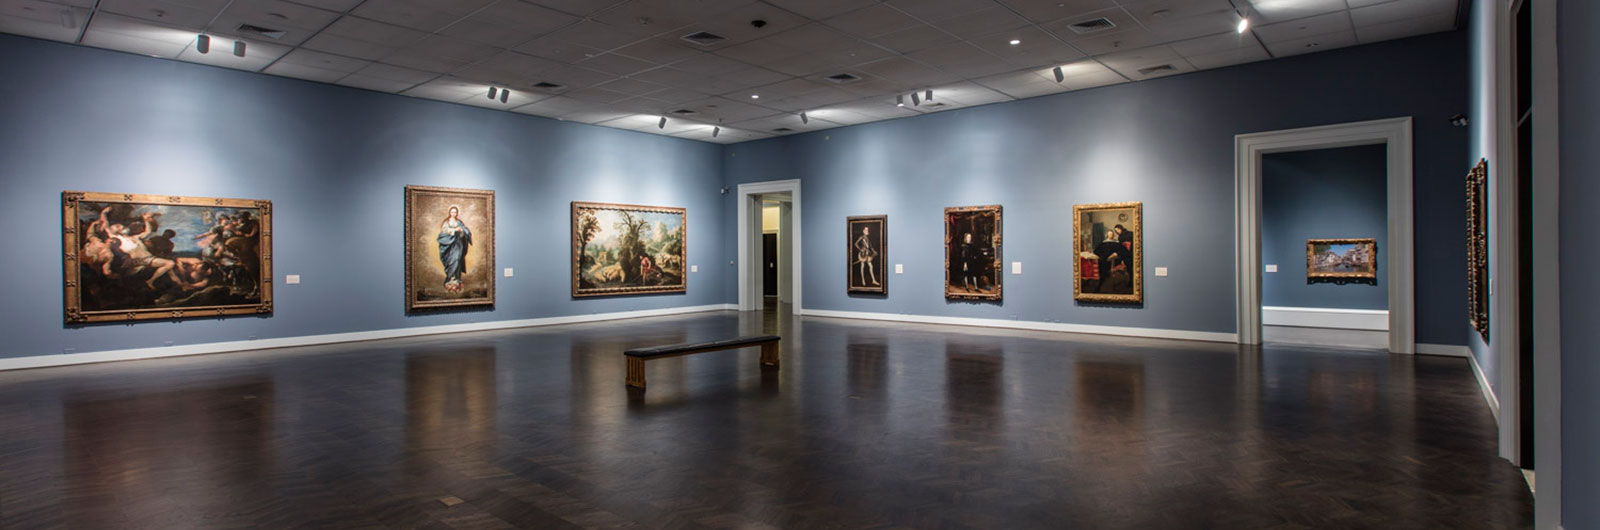 Hamon Galleries, Meadows Museum Collection